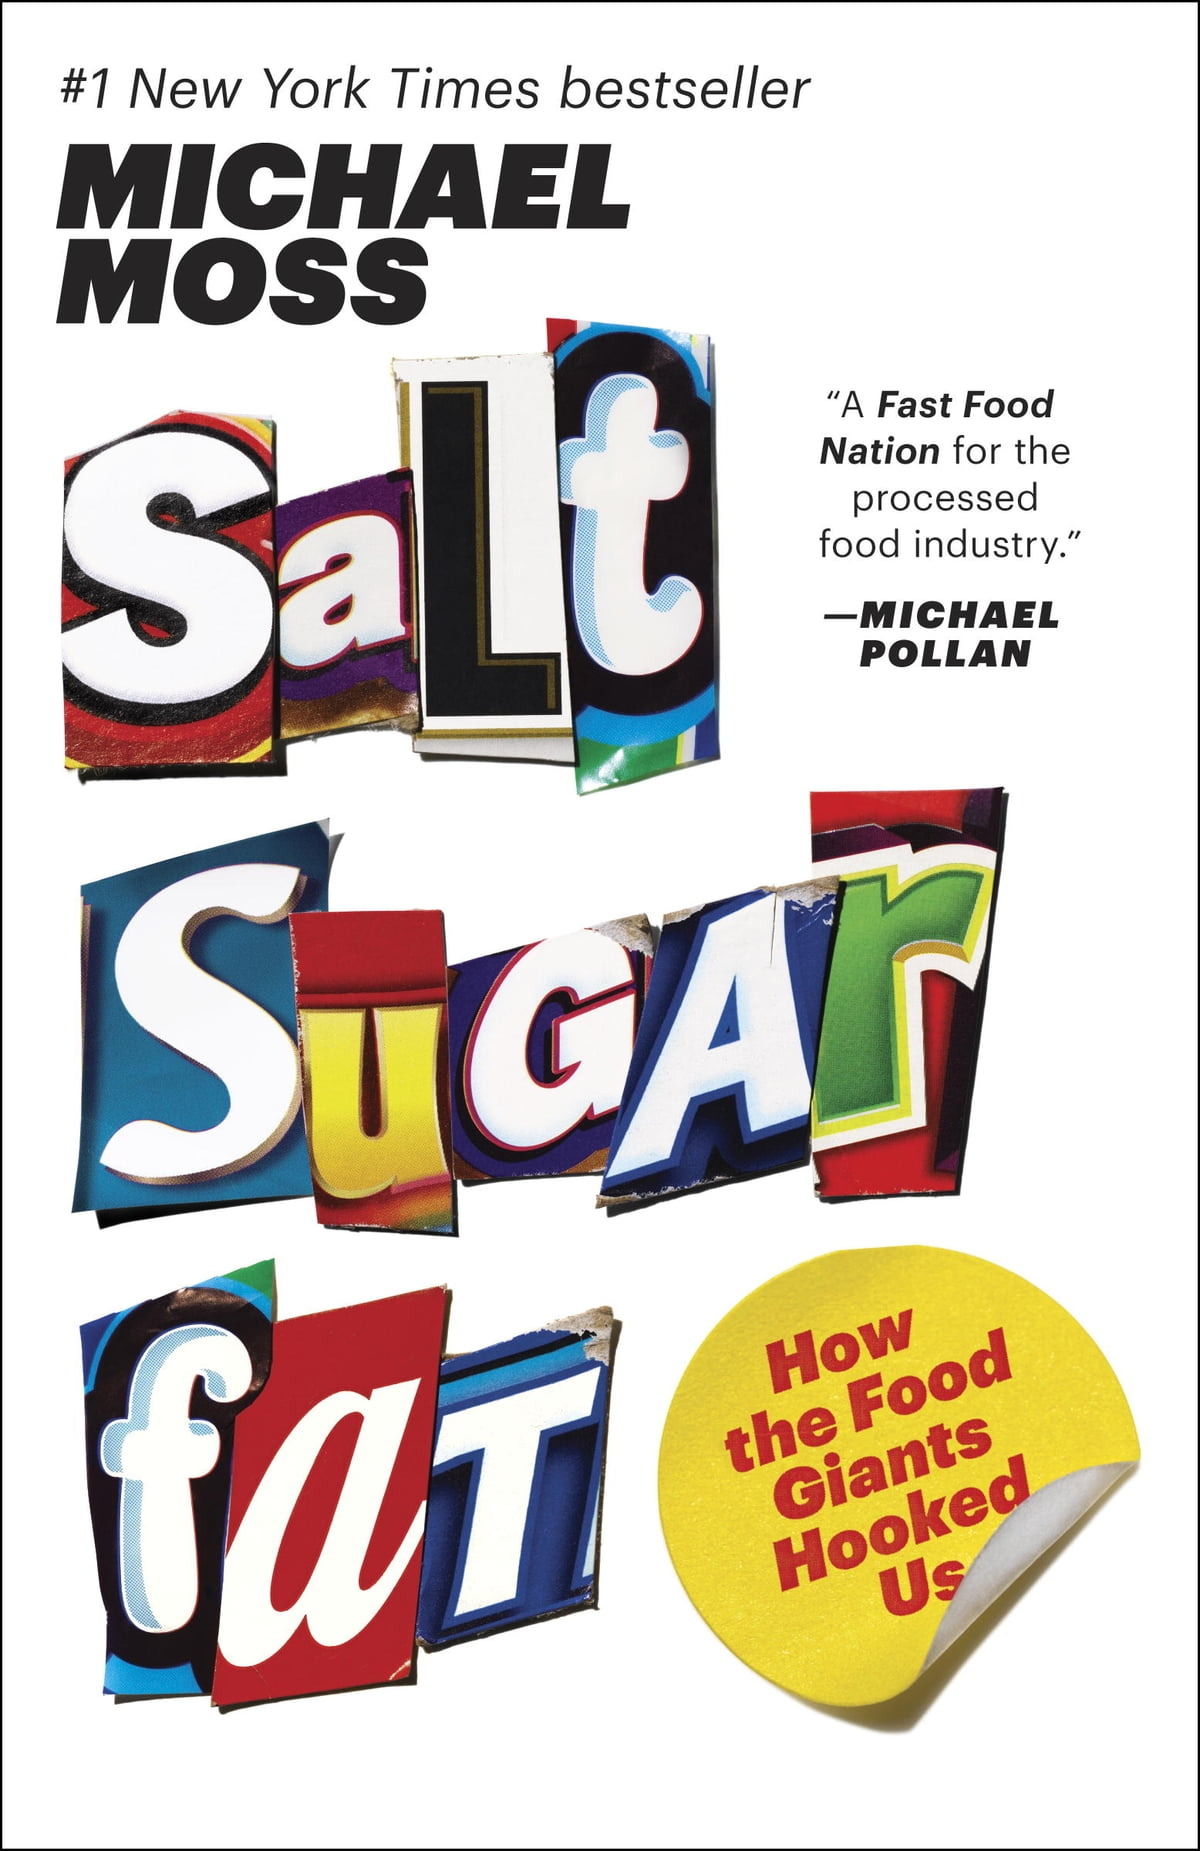 Salt Sugar Fat  How The Food Giants Hooked Us Ebook By Michael Moss